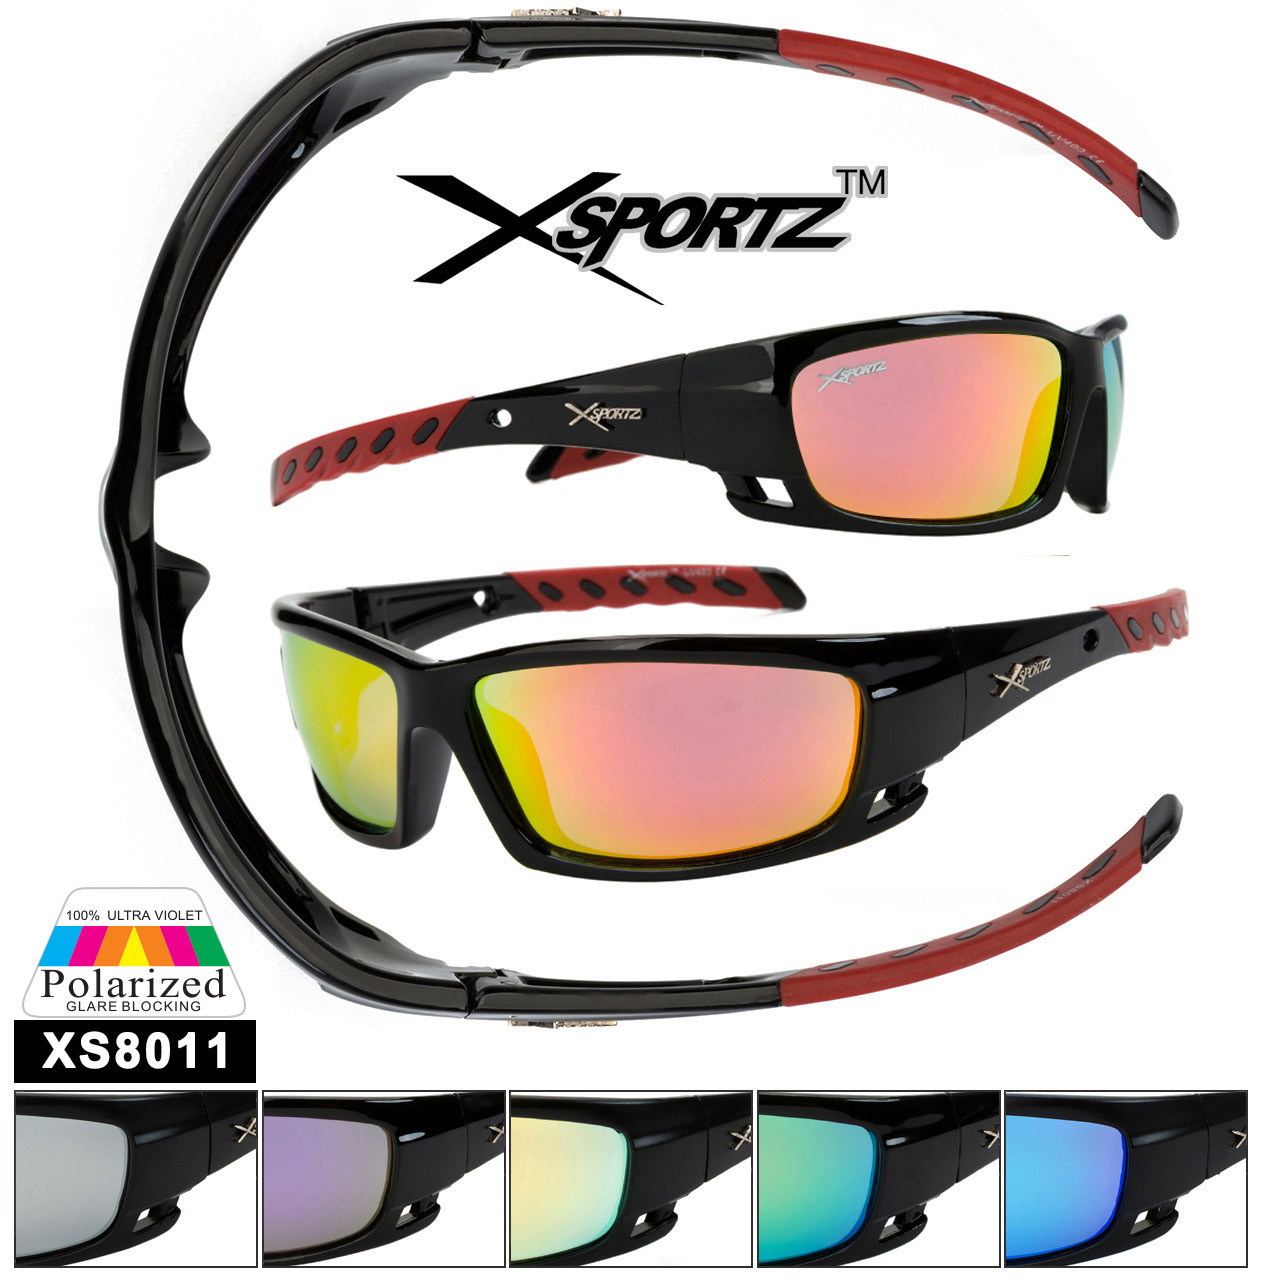 Polarized Xsportz™ Sunglasses Wholesale  - Style XS8011 (Assorted Colors) (12 pcs.)